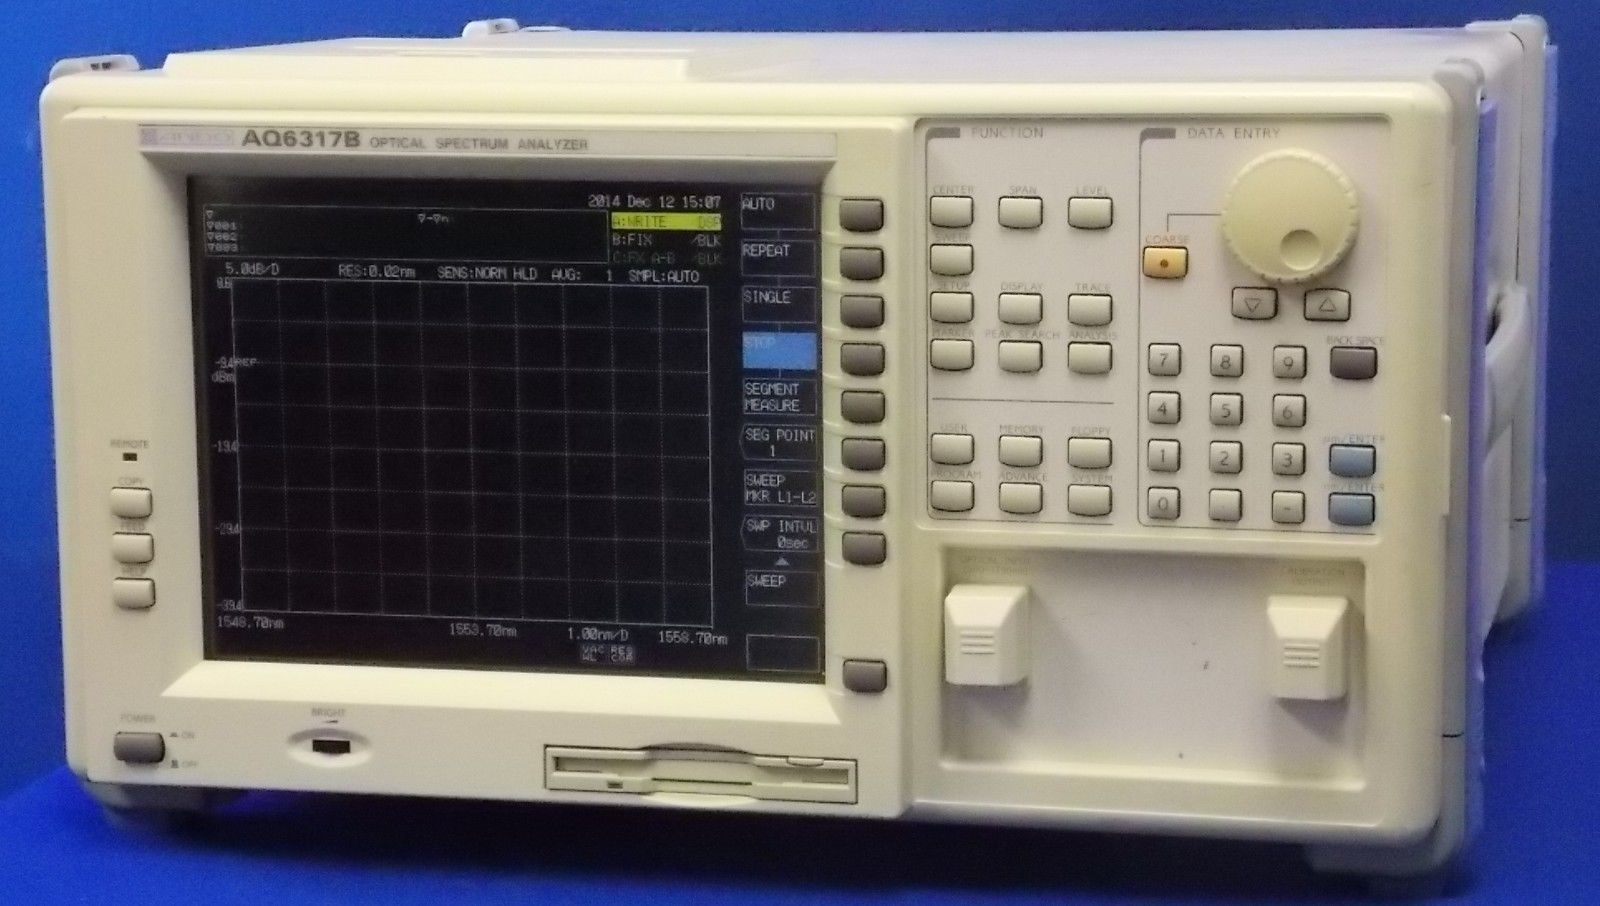 AQ6317B - Ando Optical Spectrum Analyzers